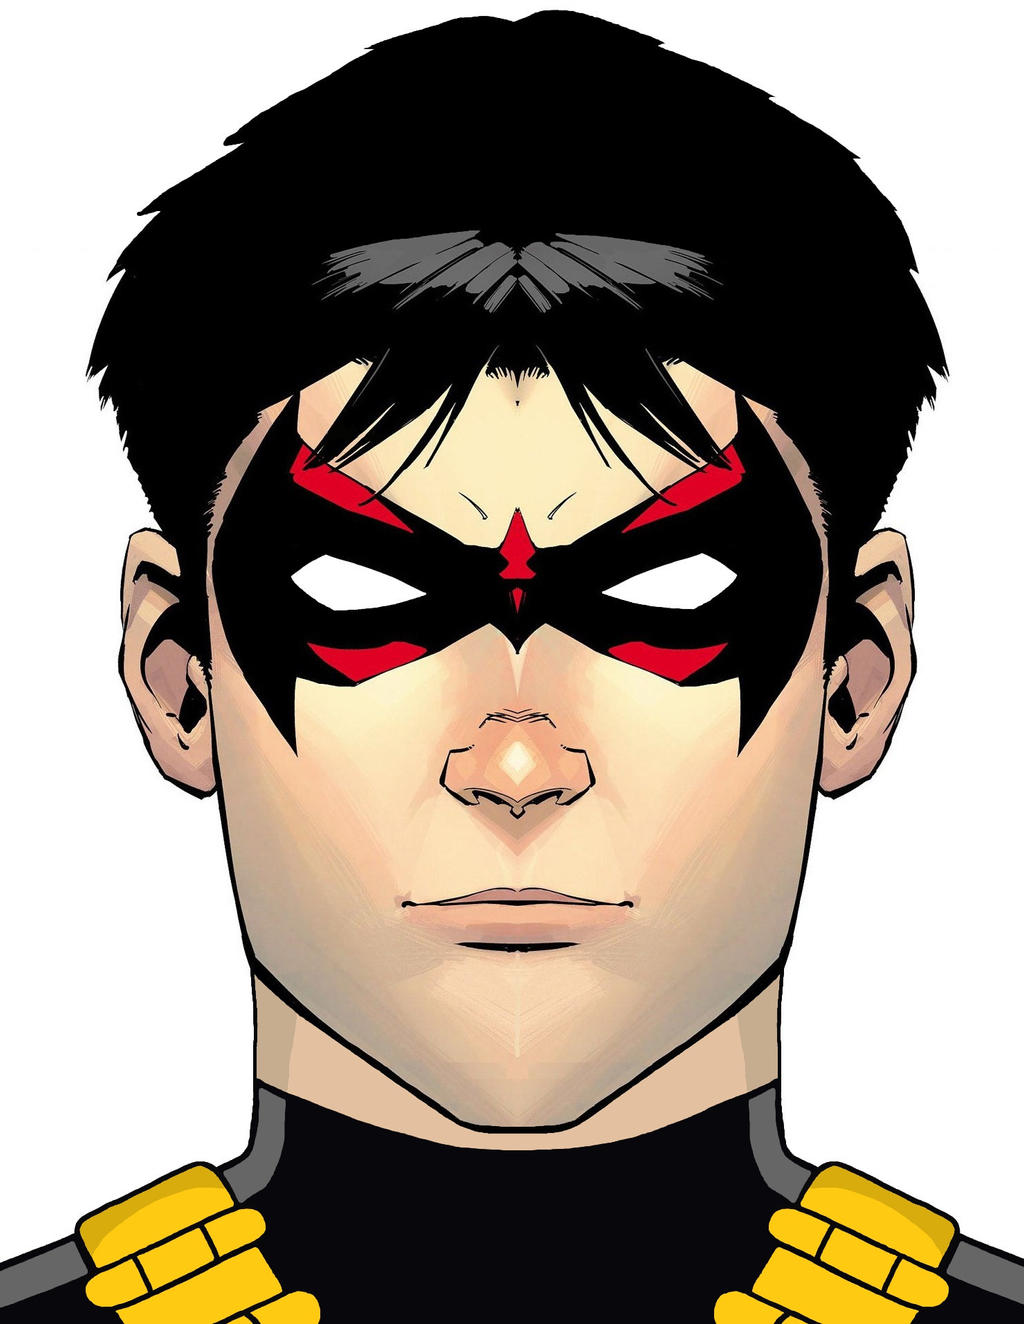 Red robin new 52 version by dragand on deviantart red robin new 52 version by dragand buycottarizona Gallery